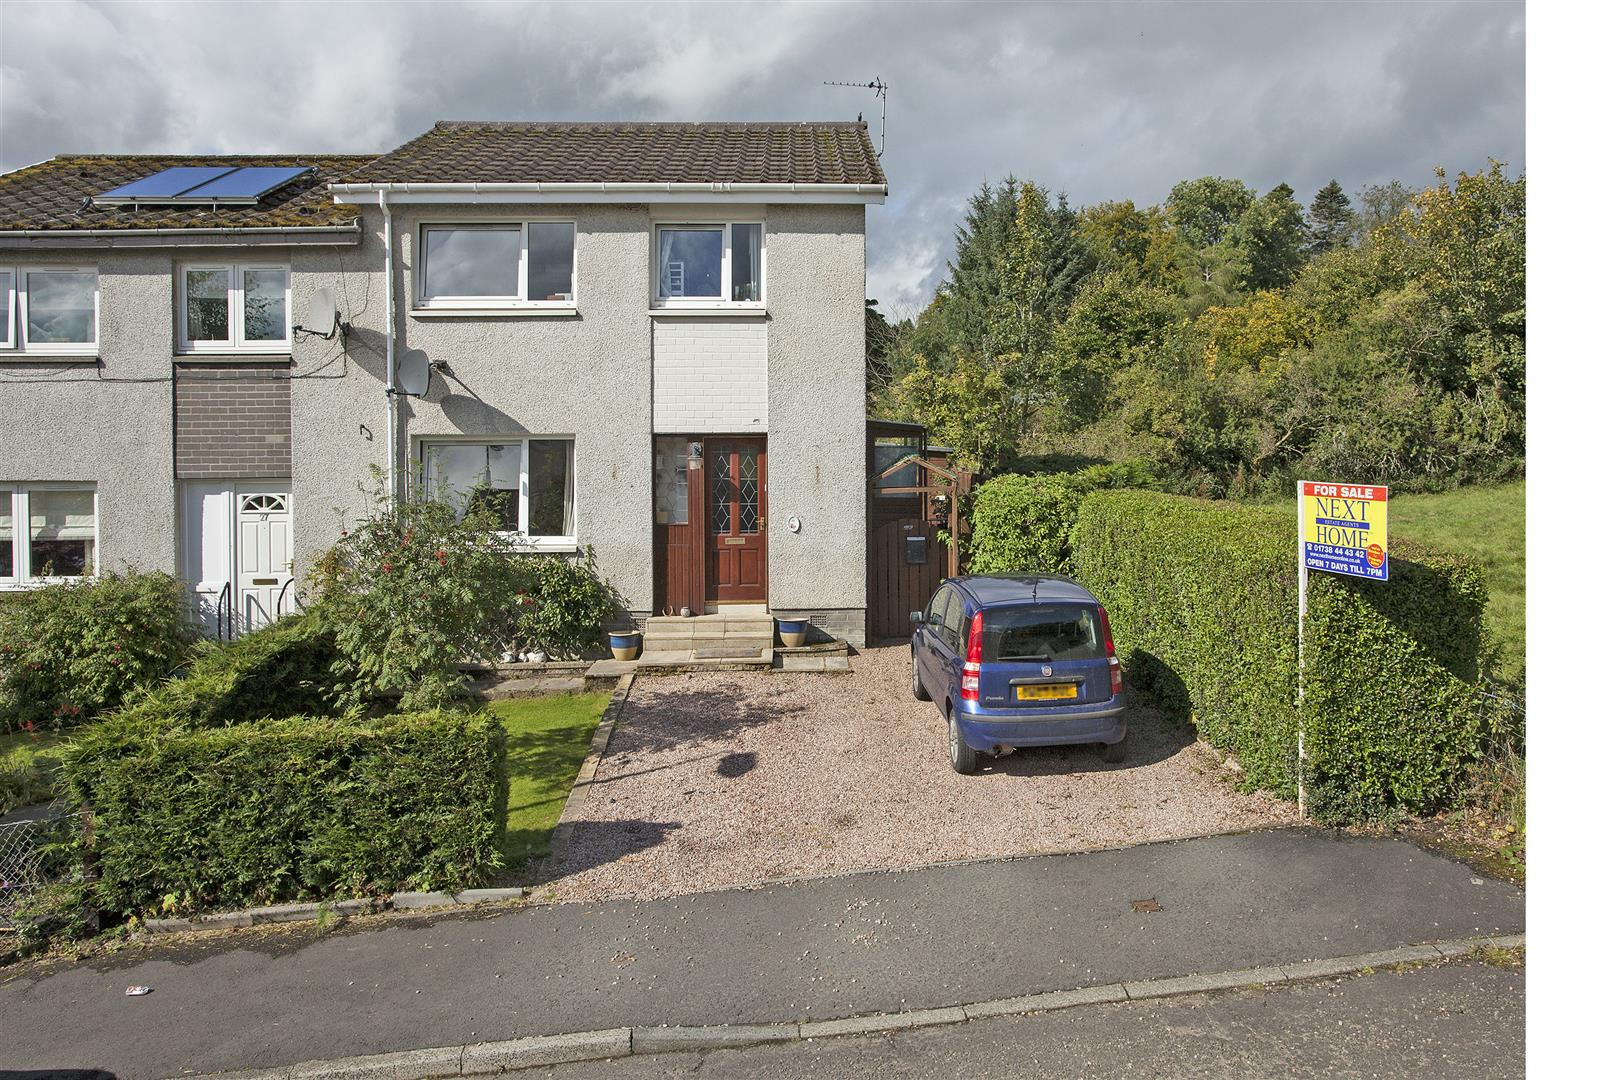 29, Grahame Terrace, Gilmerton, Crieff, Perthshire, PH7 3NB, UK